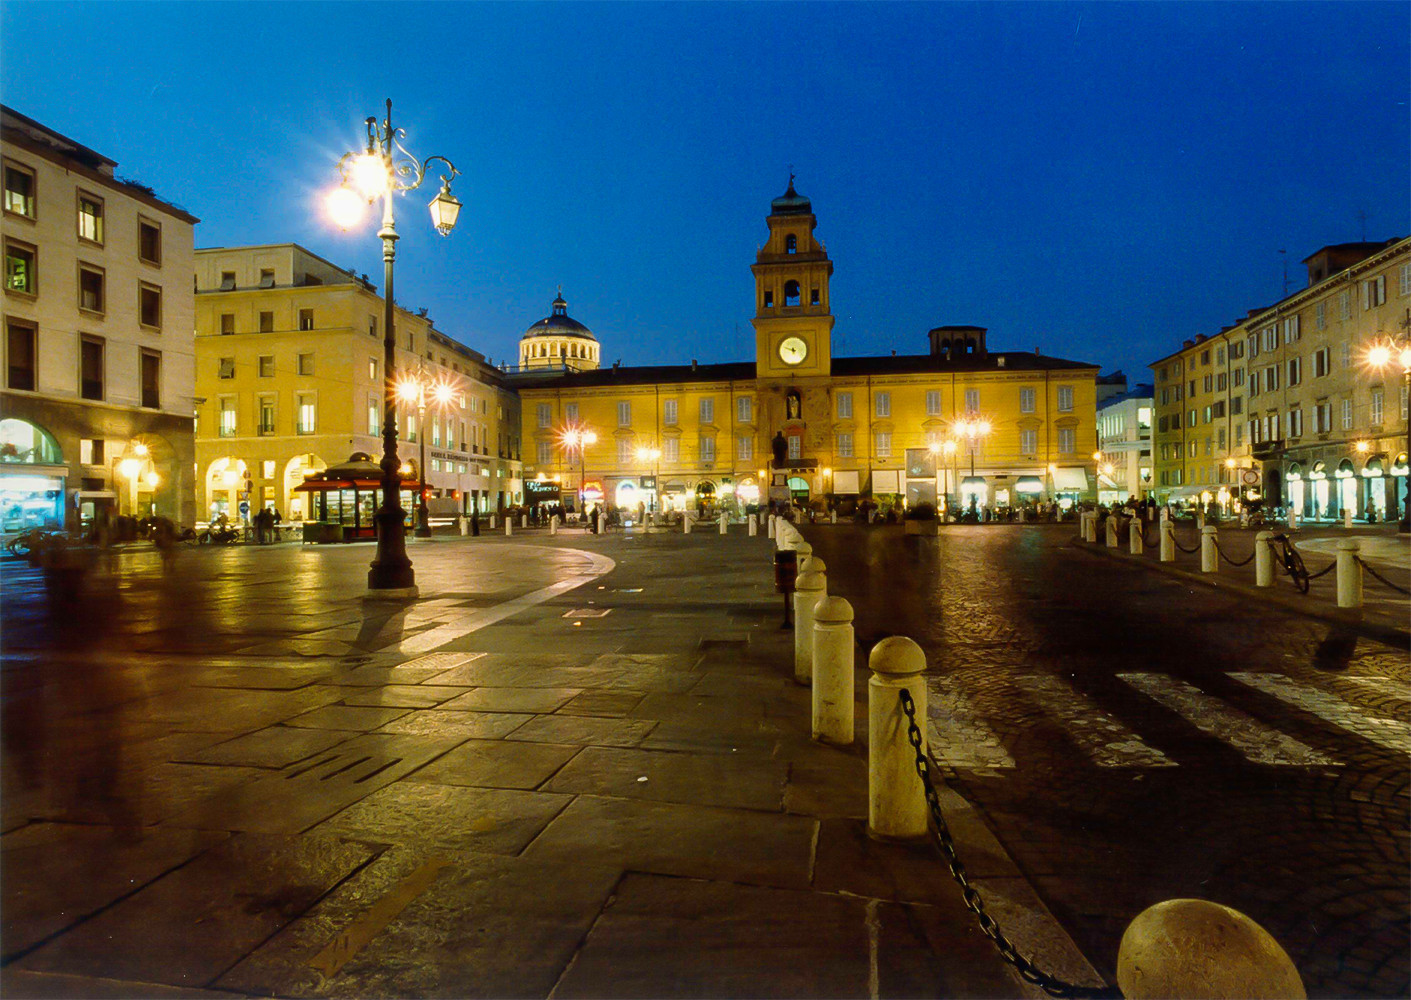 Piazza garibaldi,<br>photo by Carra